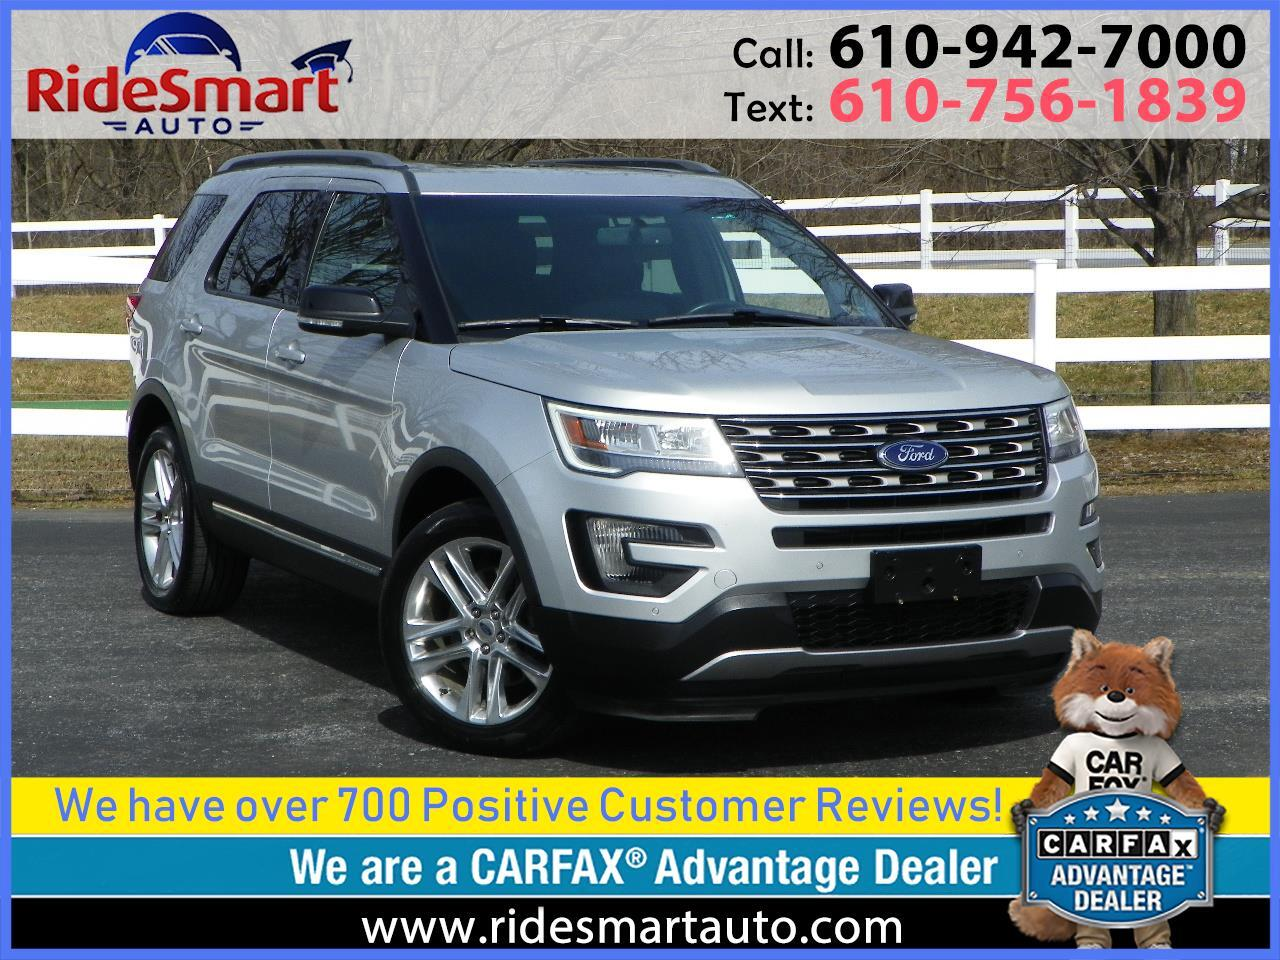 2016 Ford Explorer XLT 4WD Rear Capt Chairs-Nav-Leather-Sunroof